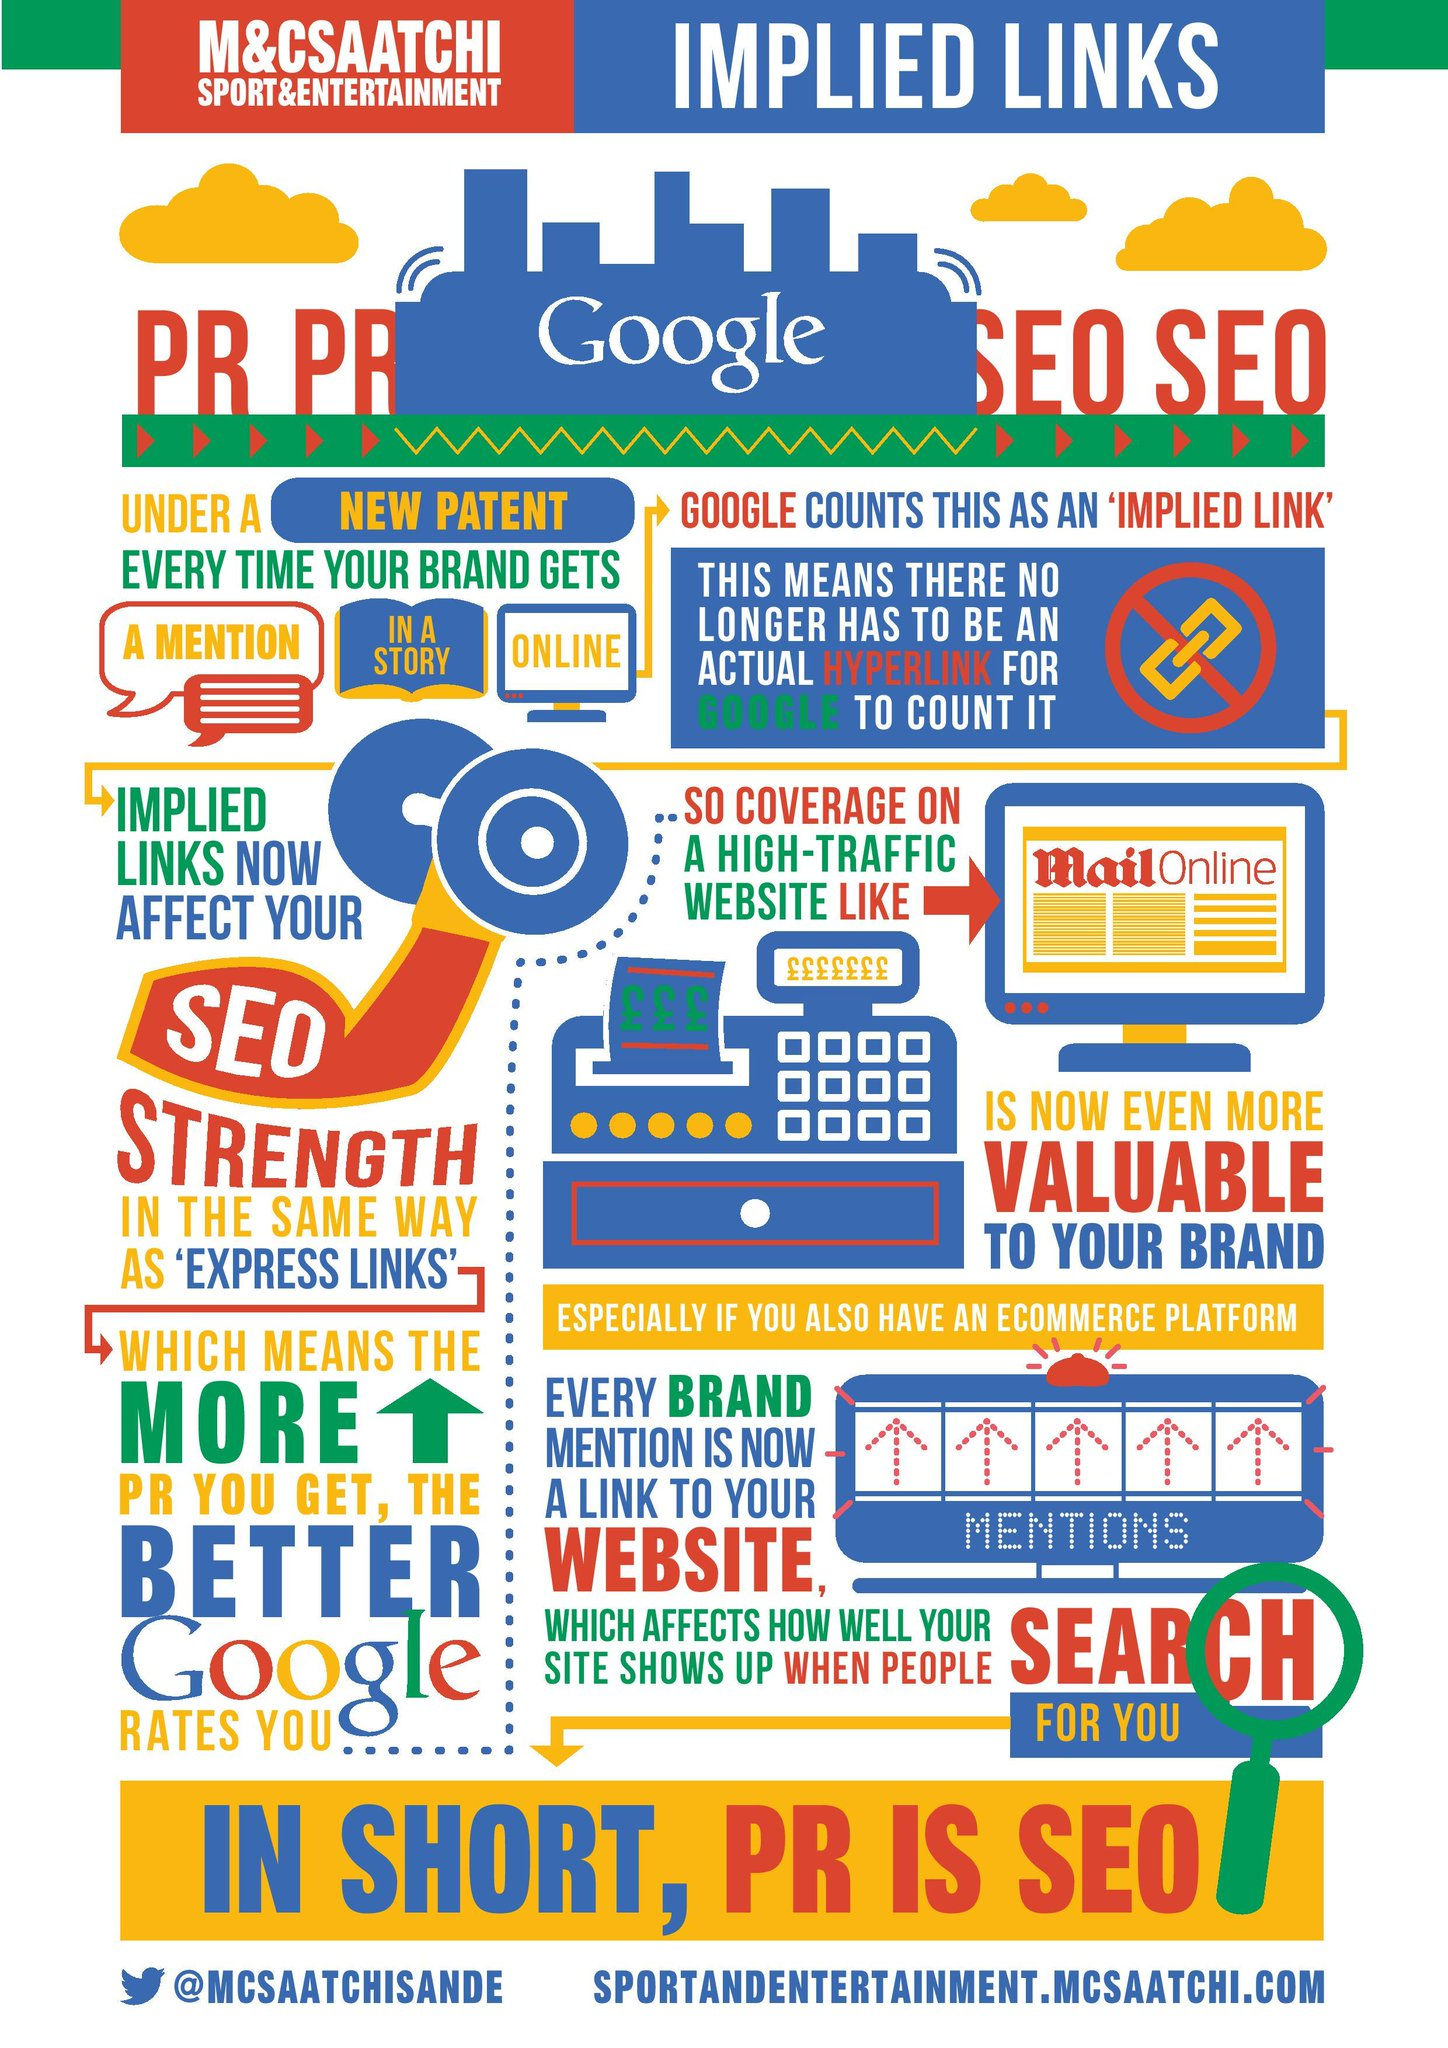 'In short, PR is SEO' > handy infographic from @MCSaatchiSandE explains how brand mentions boost online profile http://t.co/Vrr5xAIXXC